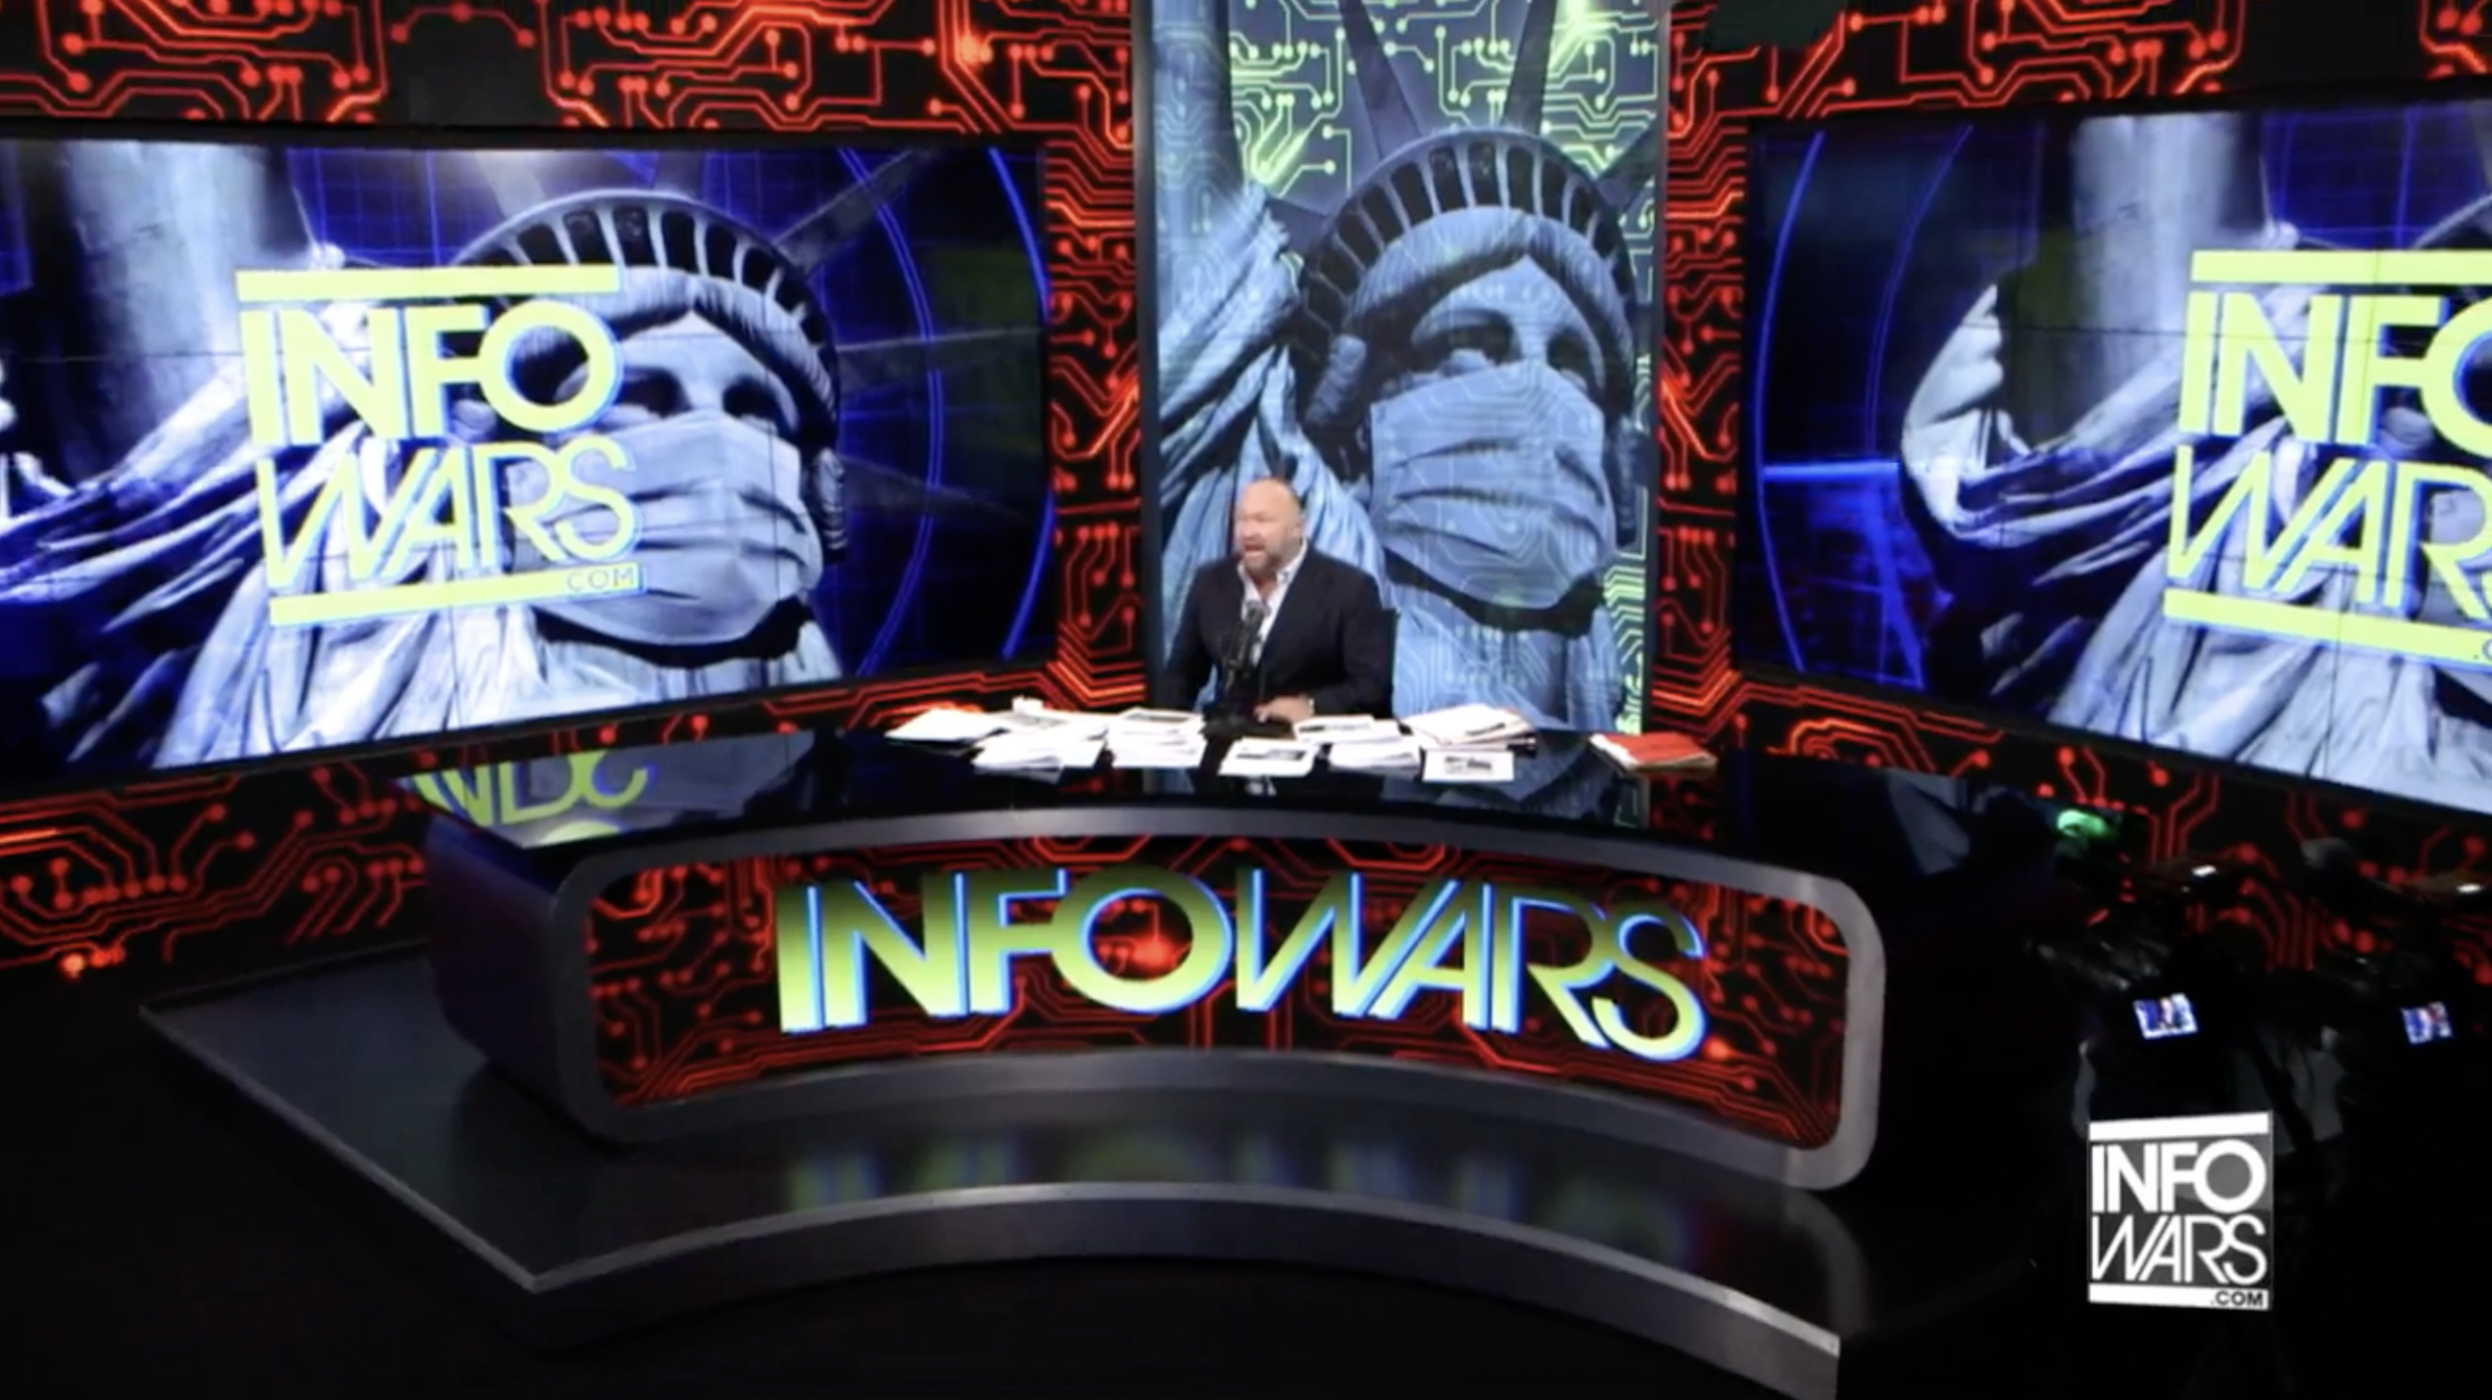 Alex Jones Infowars 3 25 2020 2